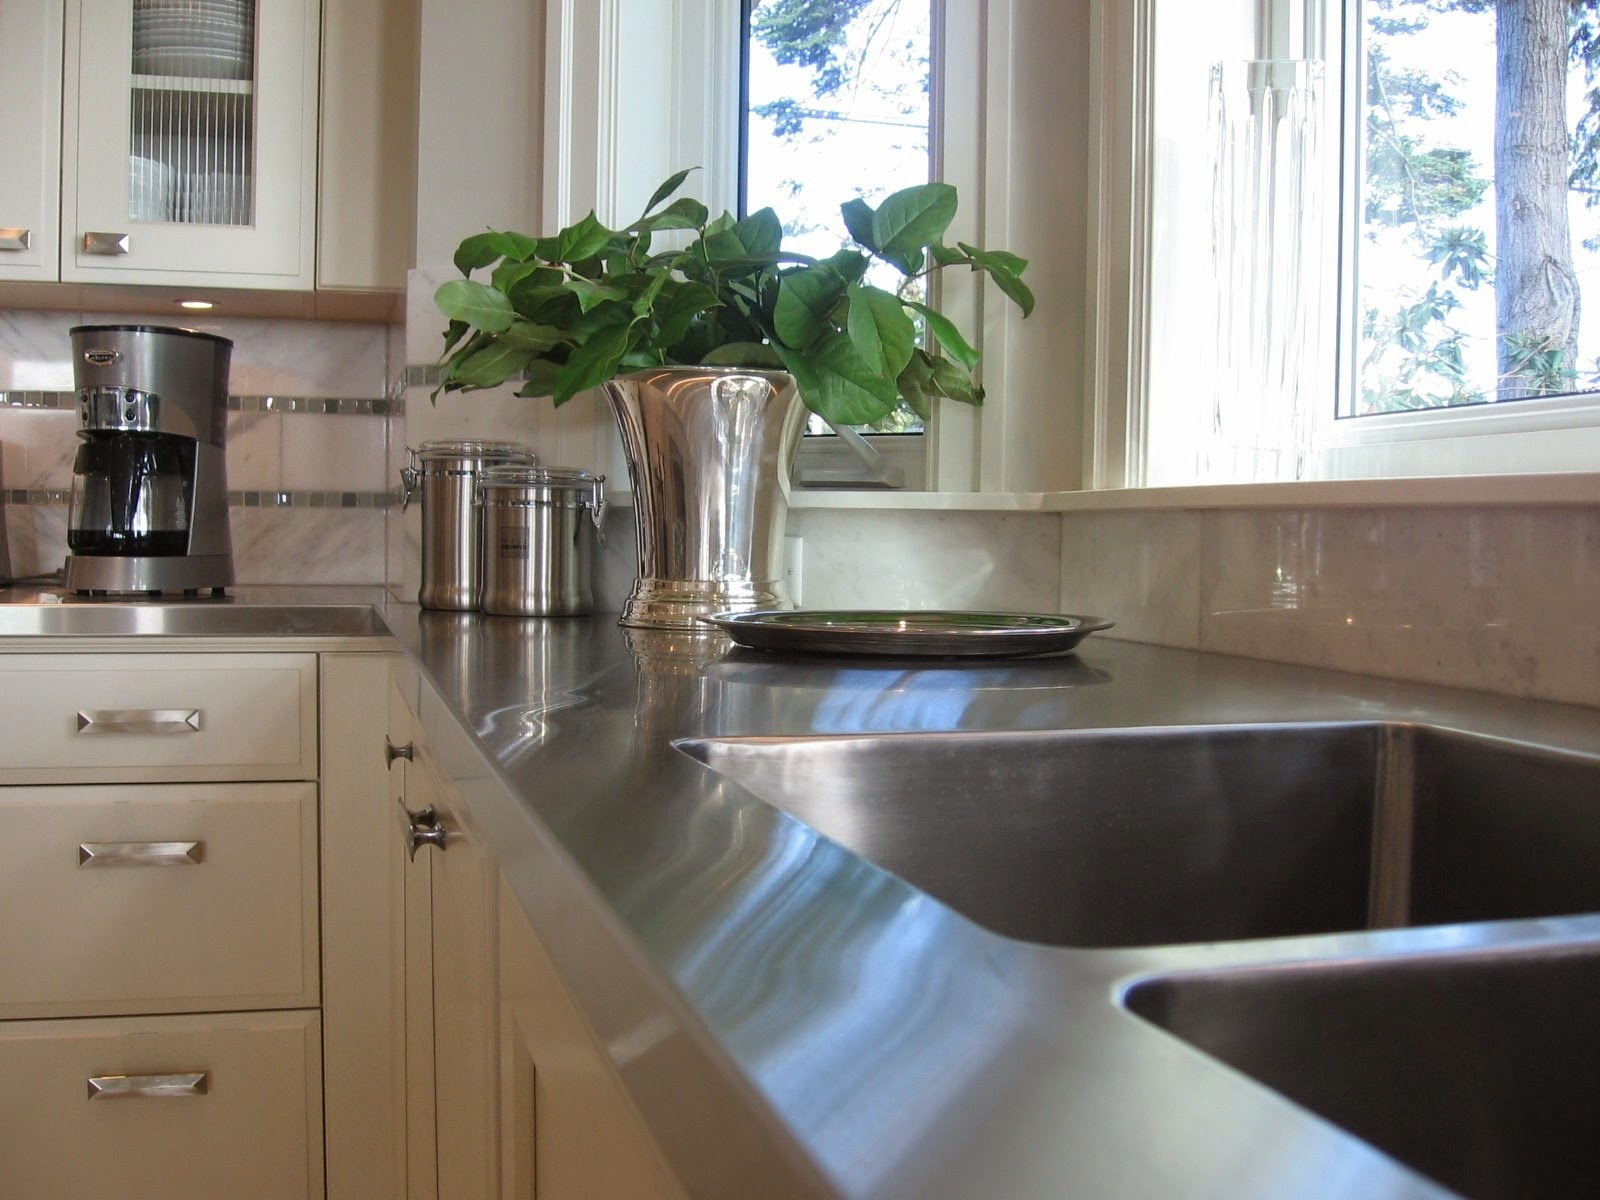 Make Stainless Steel Countertop How To Make A Stainless Steel Countertops